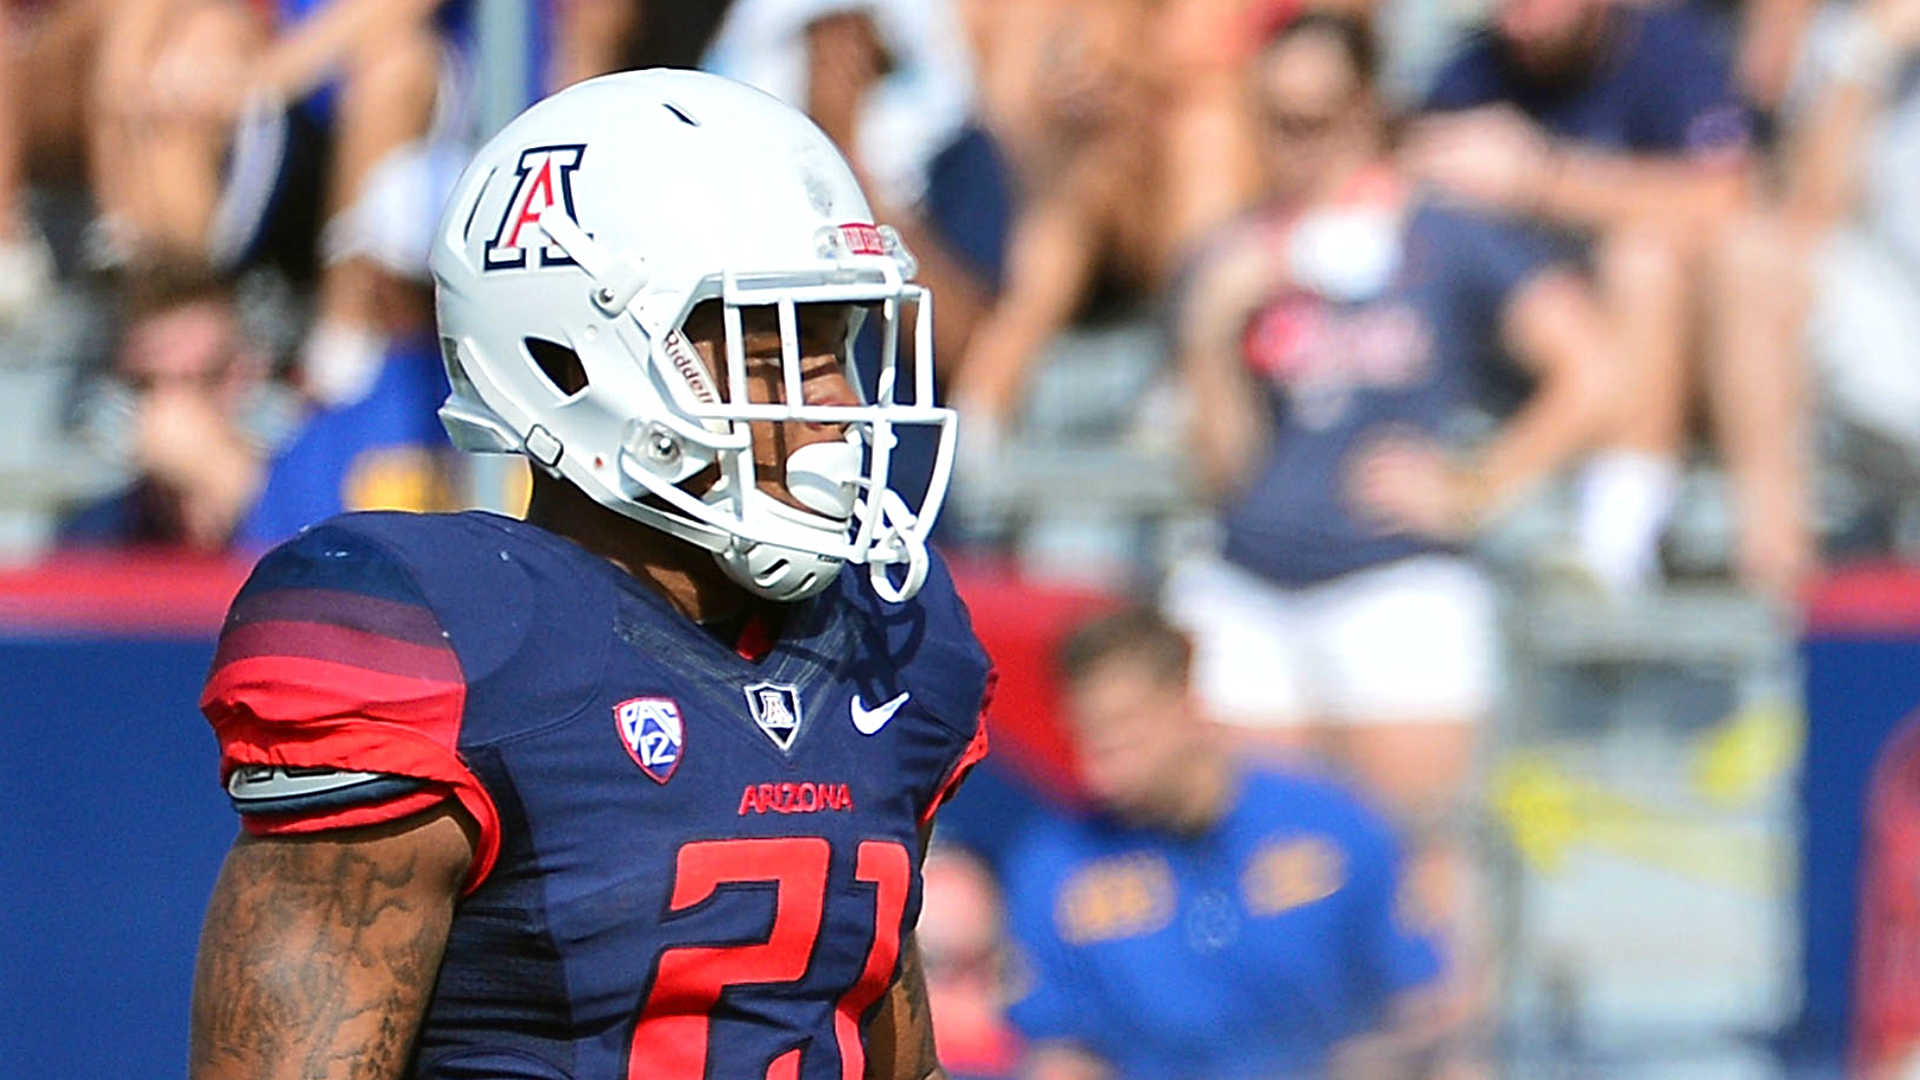 Arizona football player arrested, dismissed from team